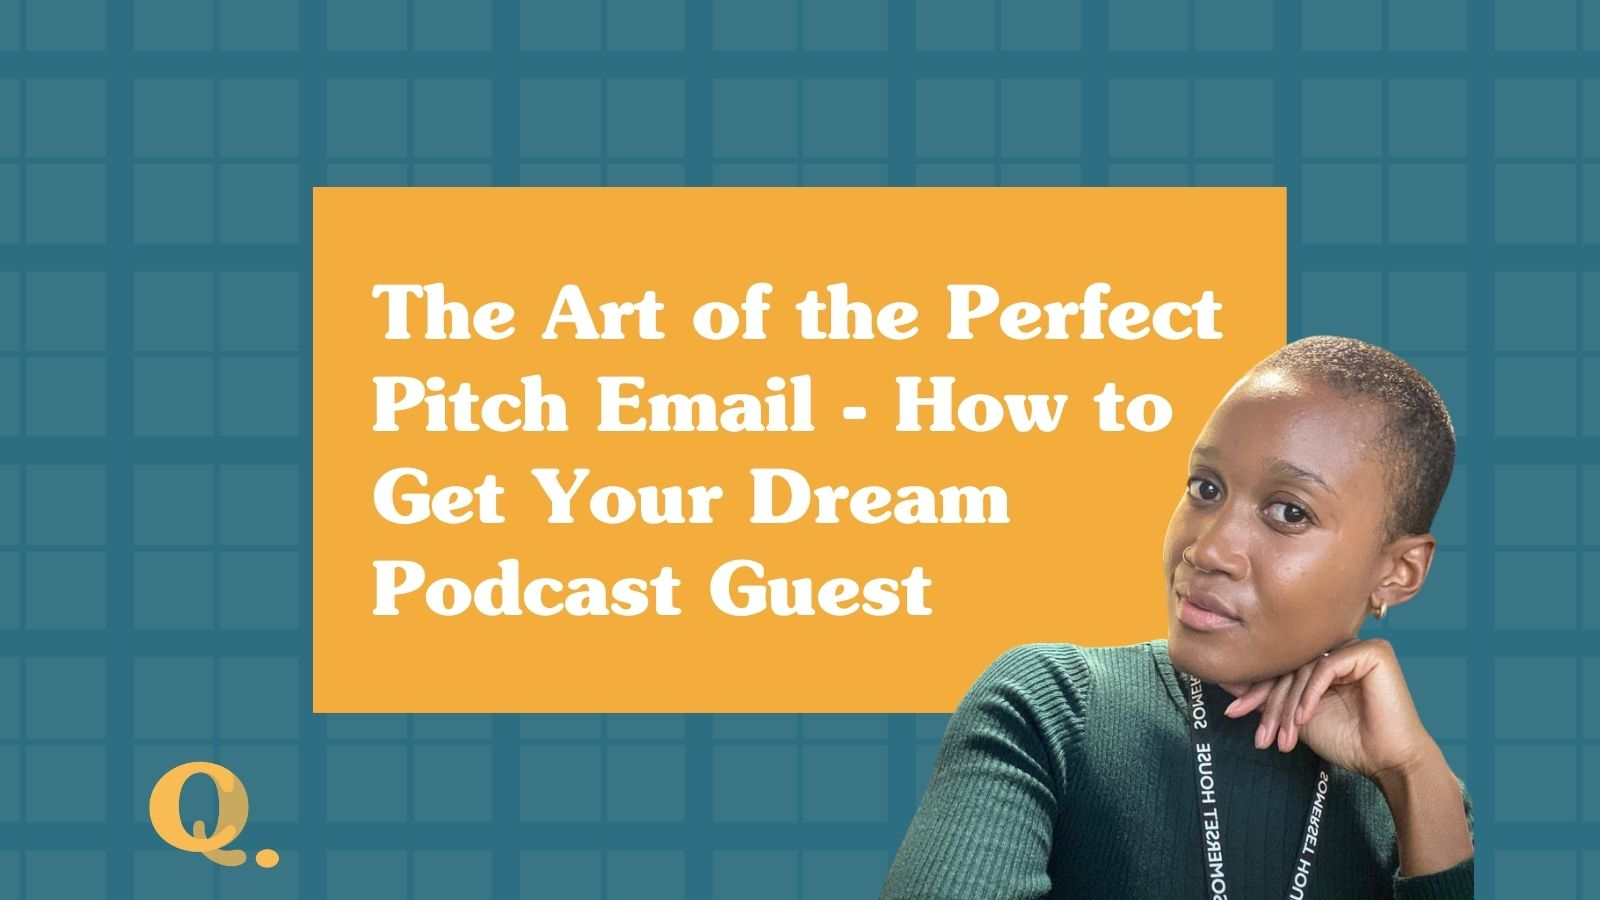 The Art of the Perfect Pitch Email – How to Get Your Dream Podcast Guest